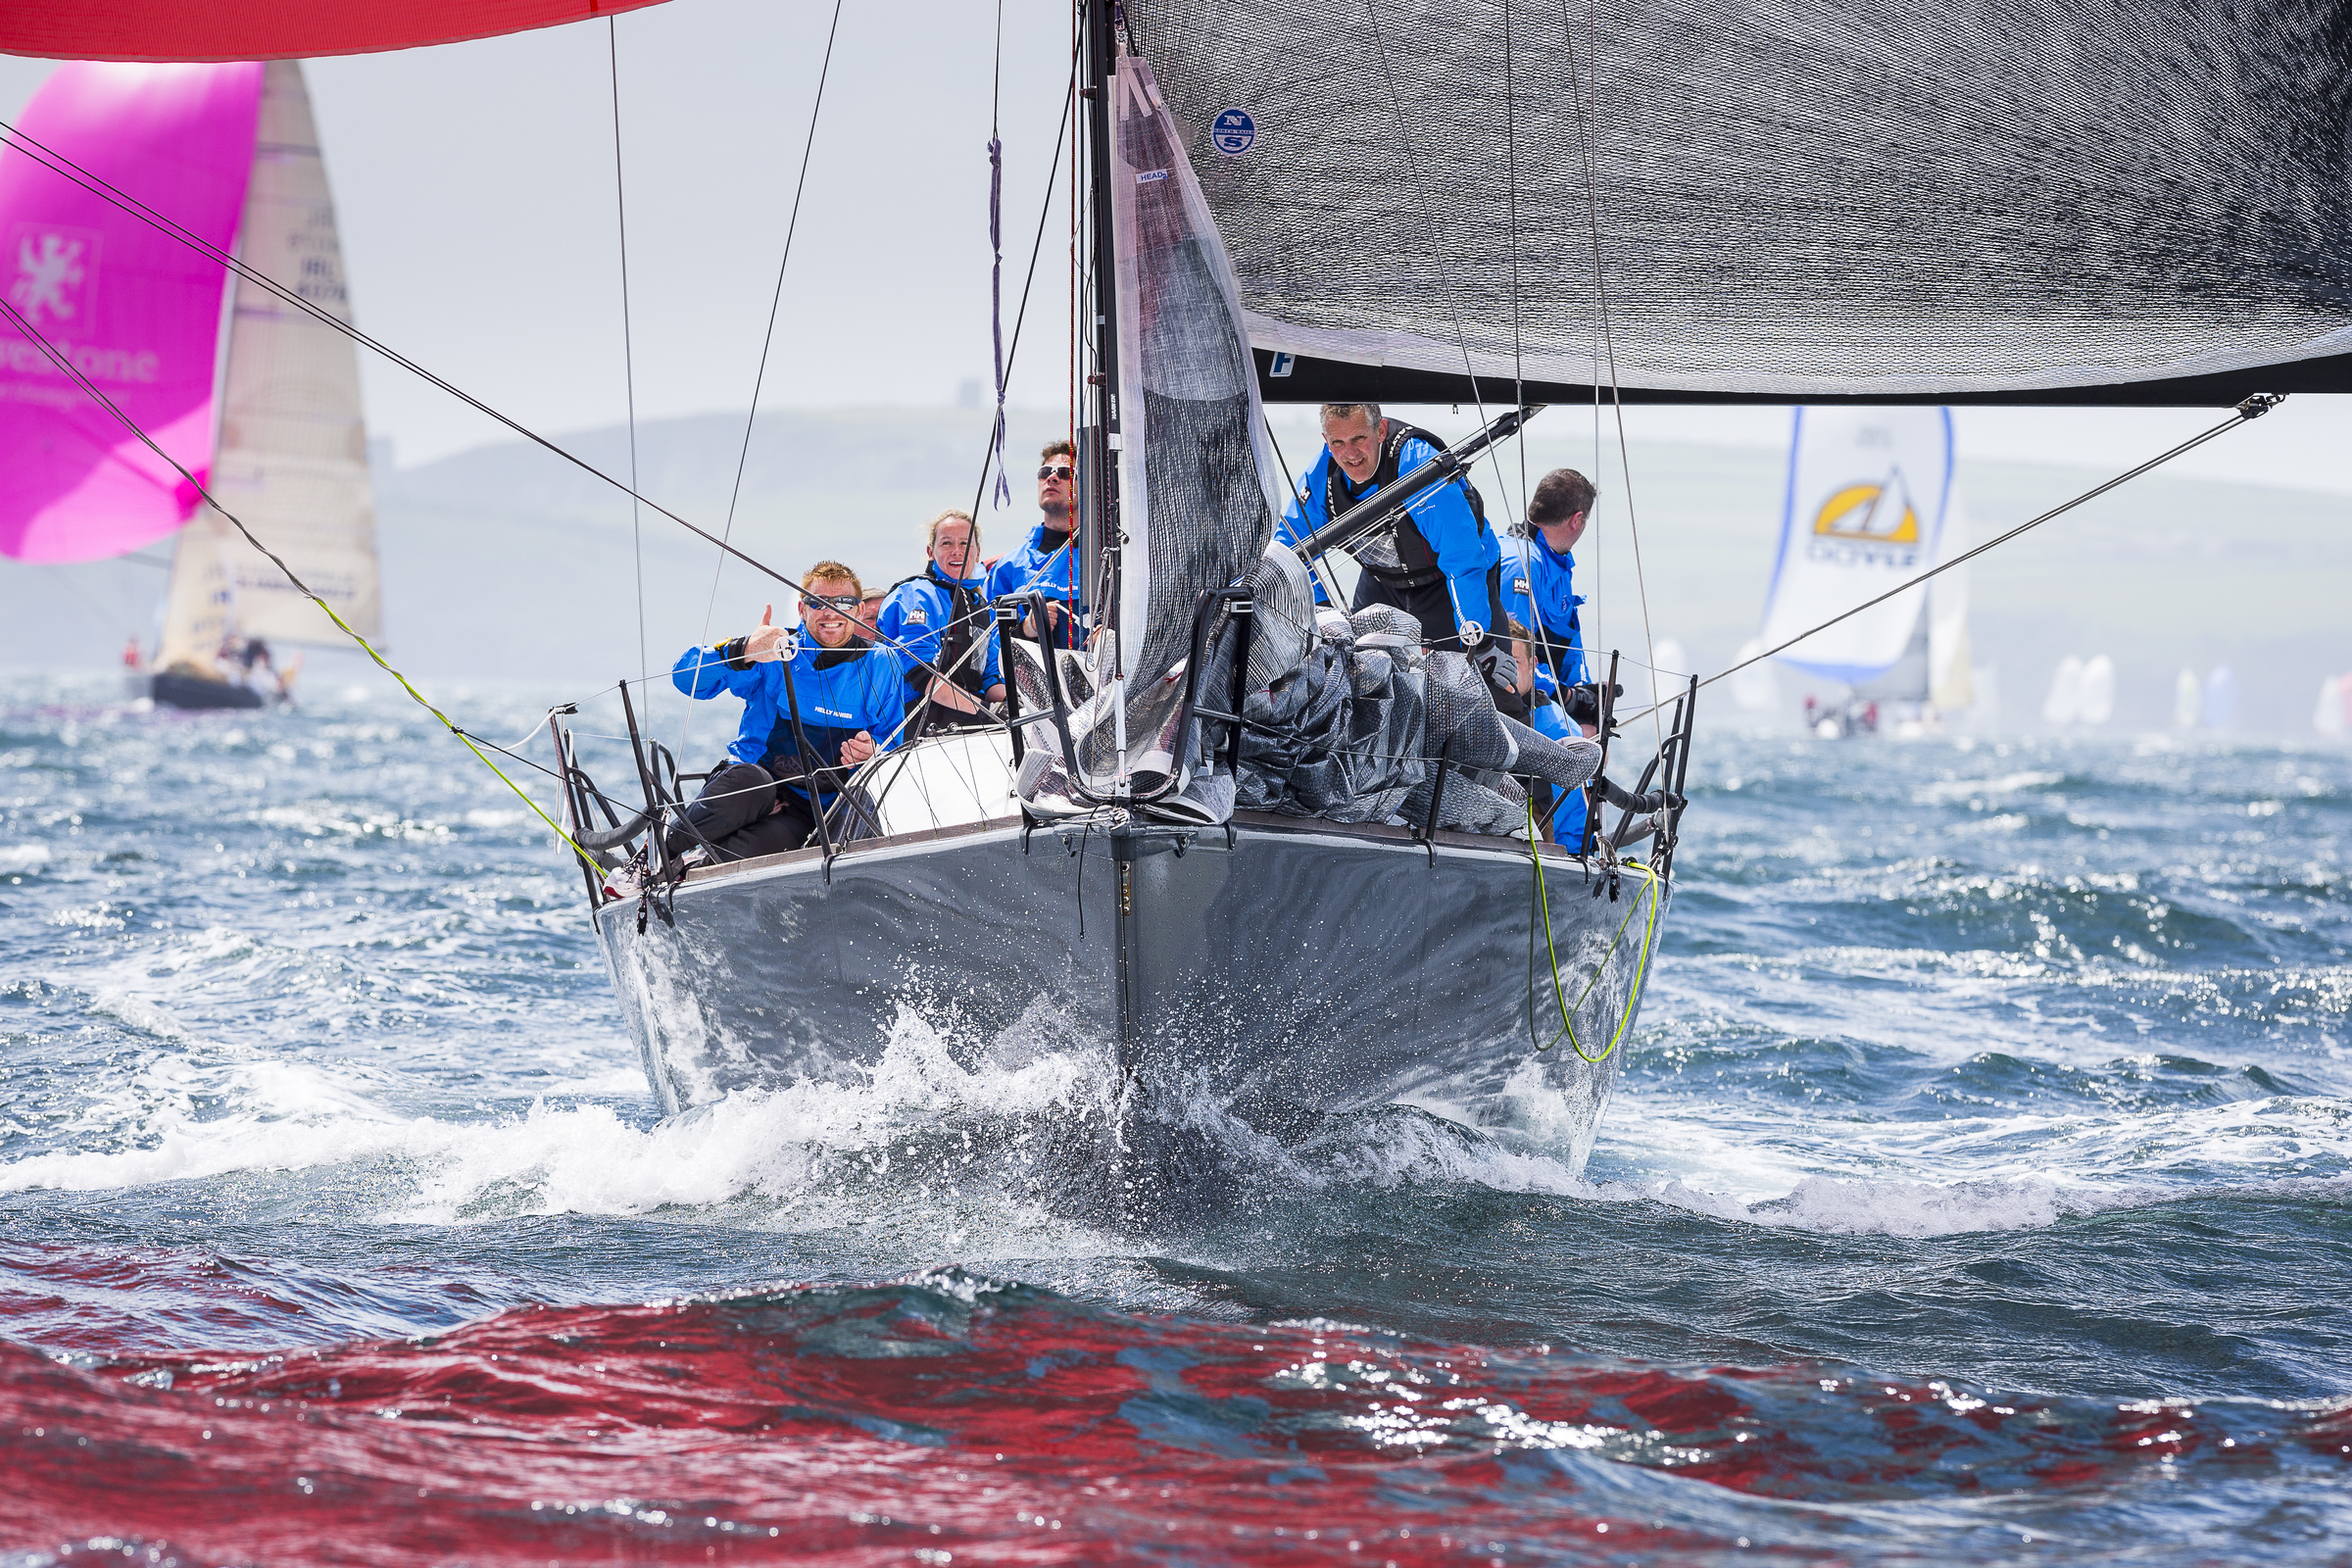 Attractive racing programme announced for 2019 ICRA National Championships and Corinthian Cups